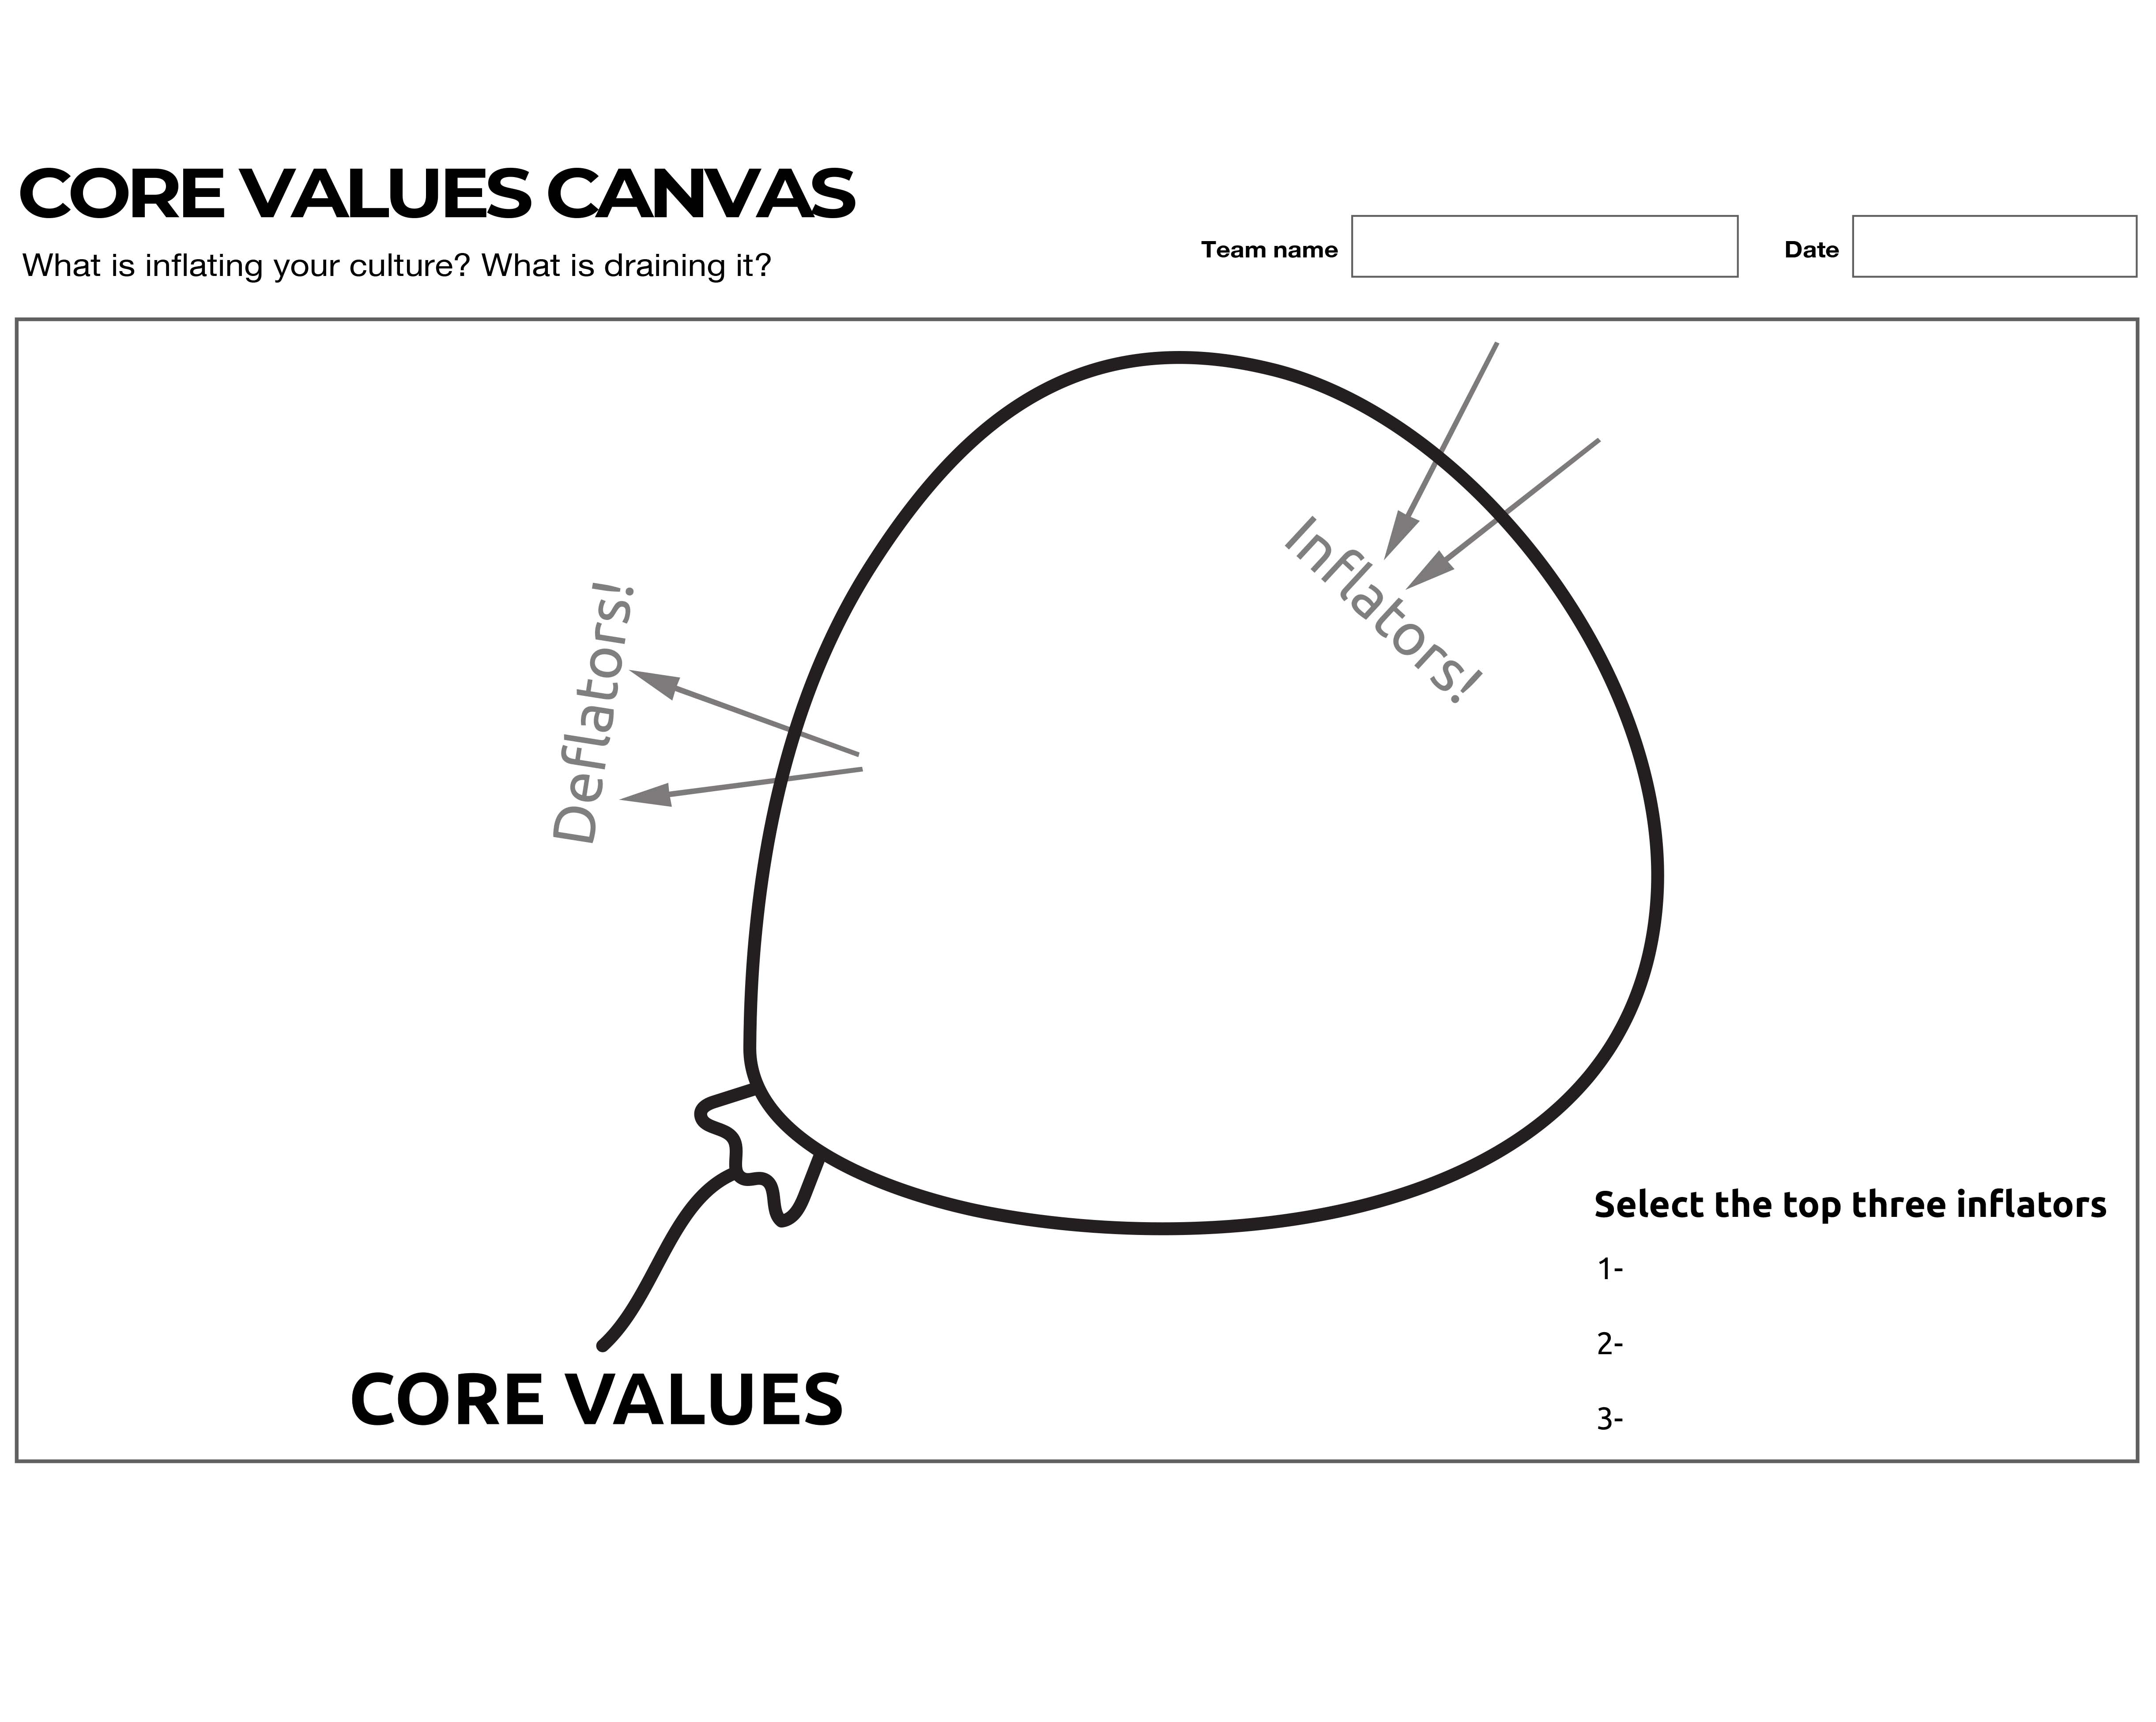 the core values canvas is a visual tool to define your company core values and drive team alignment